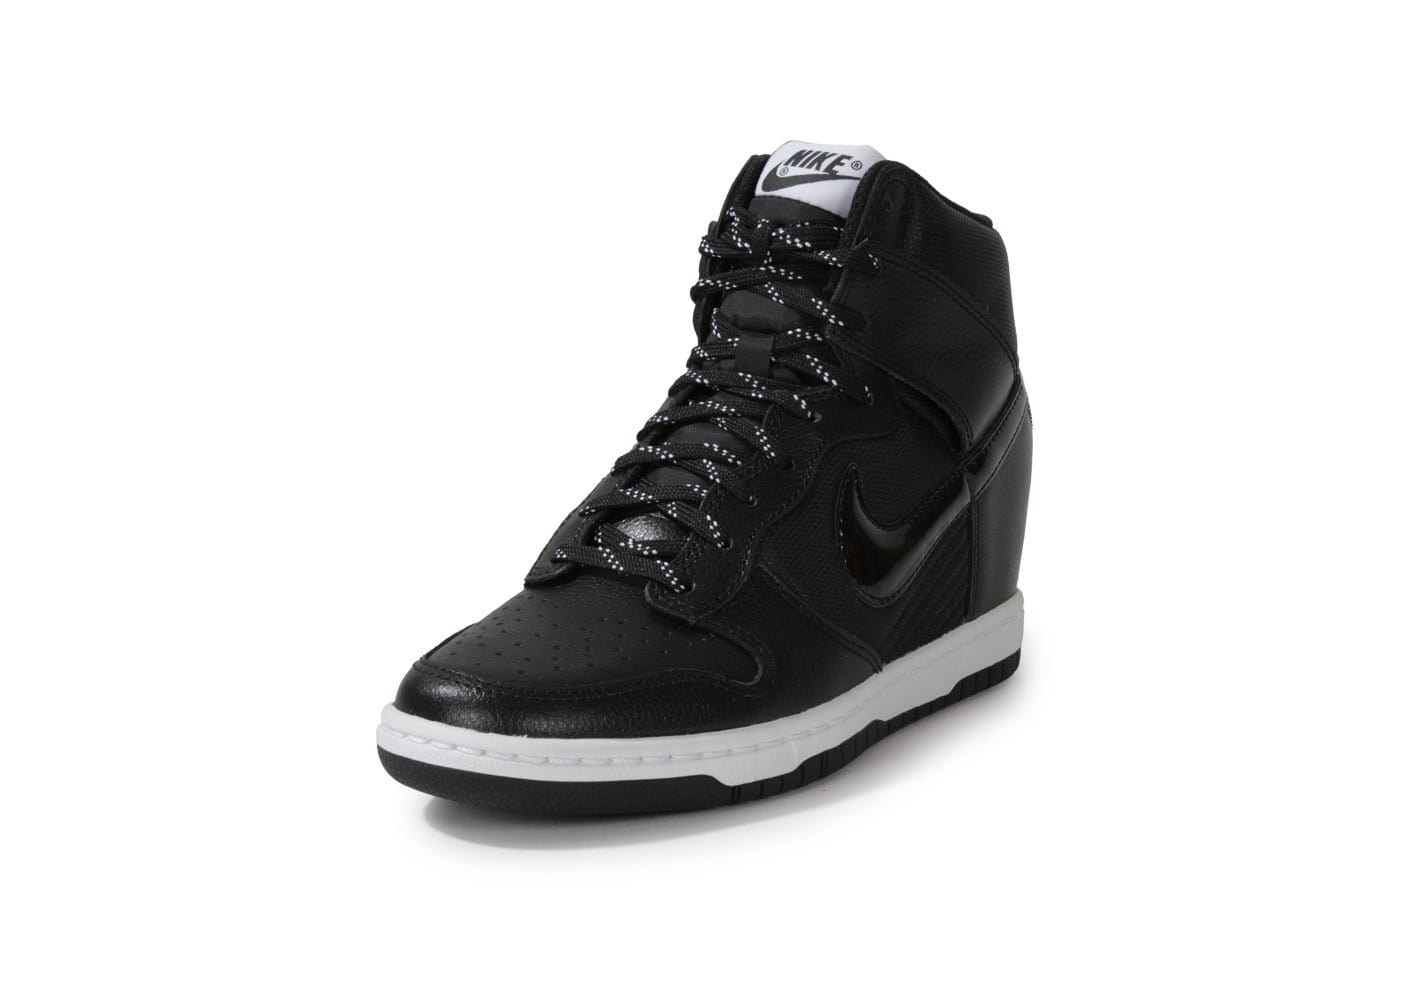 new styles 993a1 e80fb ... reduced chaussures nike dunk sky hi essential noire vue avant b556f  7fb65